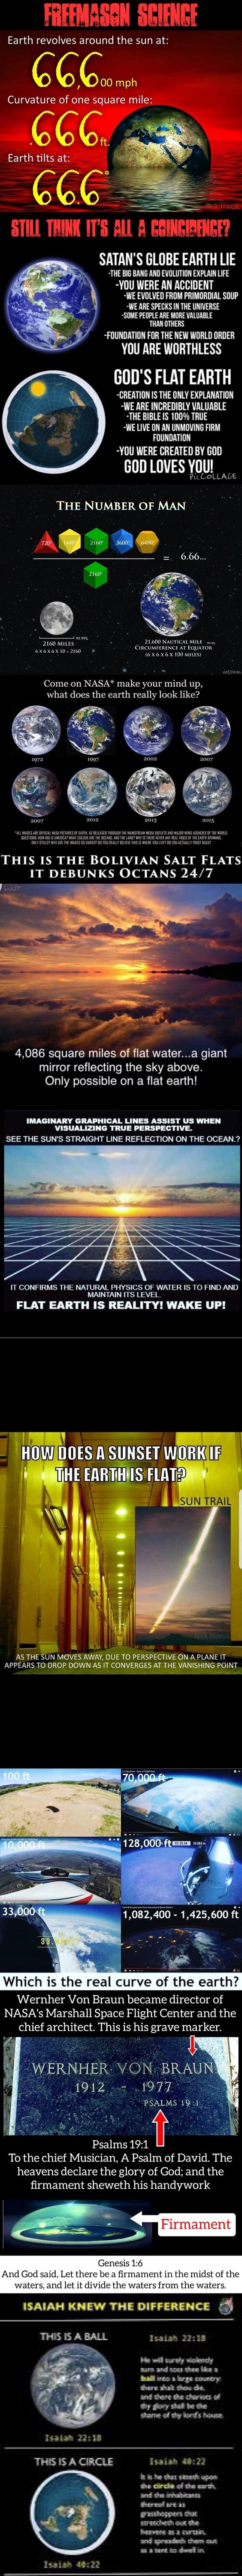 Earth revolves around the sun at 66 00 mph Curvature of one square mile Earth tilts at 666 STULL THINK IT'S ALL ESINGIBENGE SATAN'S GLOBE EARTH LIE THE BIG BANG AND EVOLUTION EXPLAIN LIFE YOU WERE AN ACCIDENT WE EVOLVED FROM PRIMORDIAL SOUP WE ARE SPECKS IN THE UNIVERSE SOME PEOPLE ARE MORE VALUABLE THAN OTHERS FOUNDATION FOR THE NEW WORLD ORDER YOU ARE WORTHLESS GOD'S FLAT EARTH CREATION IS THE ONLY EXPLANATION WE ARE INCREDIBLY VALUABLE THE BIBLE IS 100% TRUE WE LIVE ON AN UNMOVING FIRM FOUNDATION VOU WERE CREATED BY GOD GOD LOVES YOU Ge THE NUMBER OF MAN 6.66 2160 MILES 21,600 NAUTICAL MILE CIRCUMFERENCE AT EQUATOR. YoxDuss Come on NASA* make your mind up, what does the earth really look like 2007 2012 2013 2015 MUGES AE OFFAL OW MASA PICTURES OF ARH COLOUR TH THROUGH THE THE ASTRA THEE